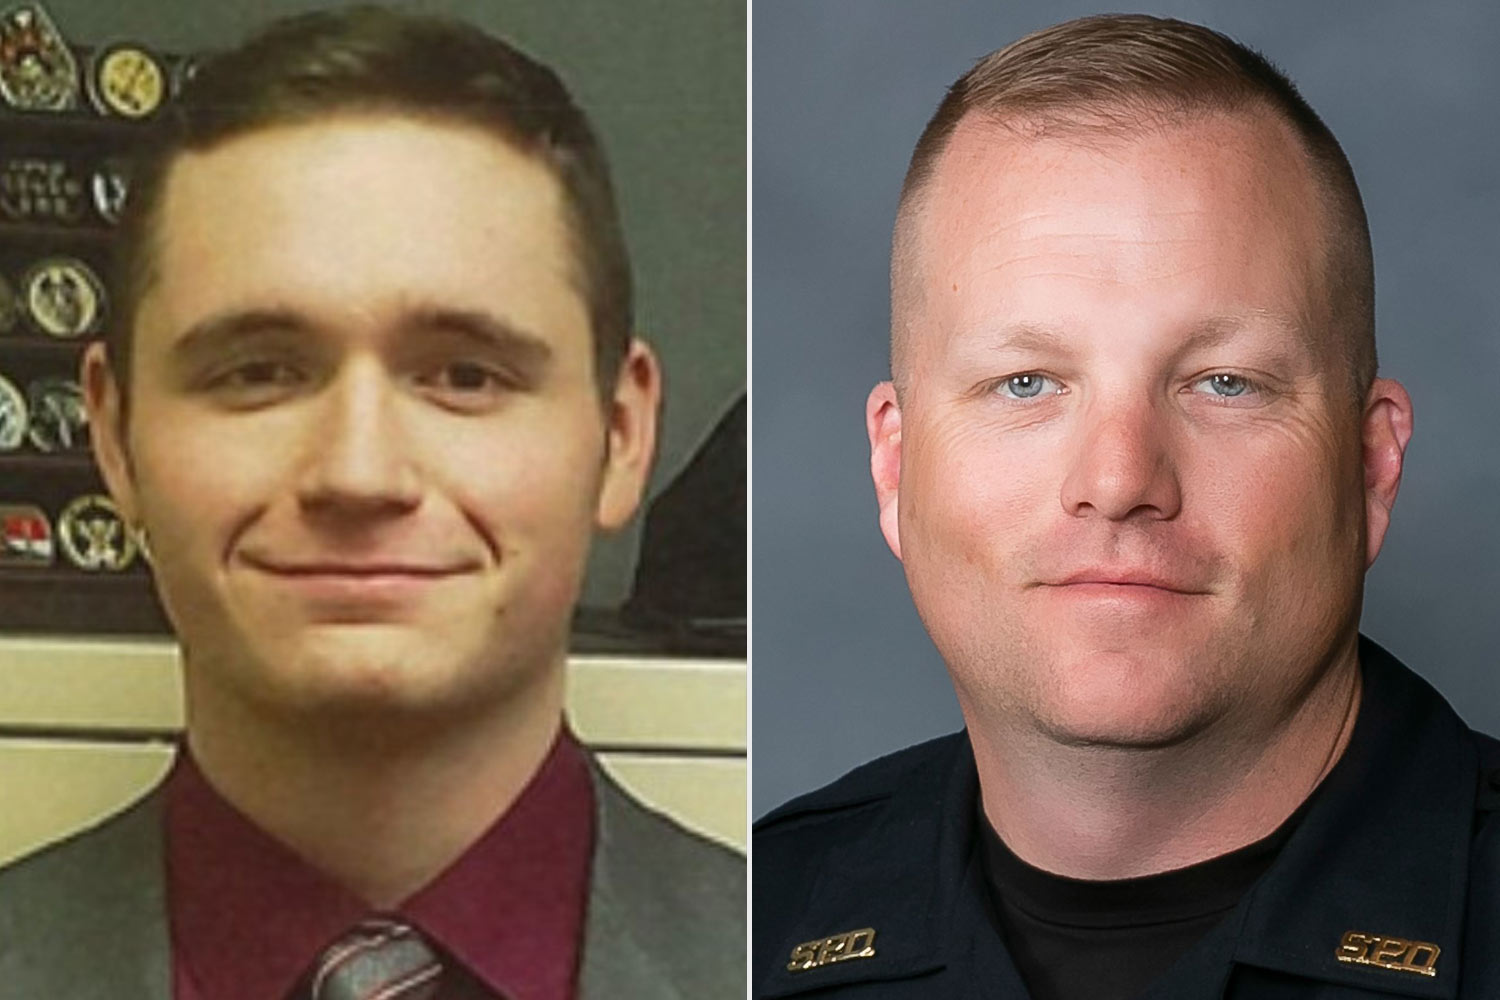 Officer Blaize Madrid Evans and Office Mark Priebe